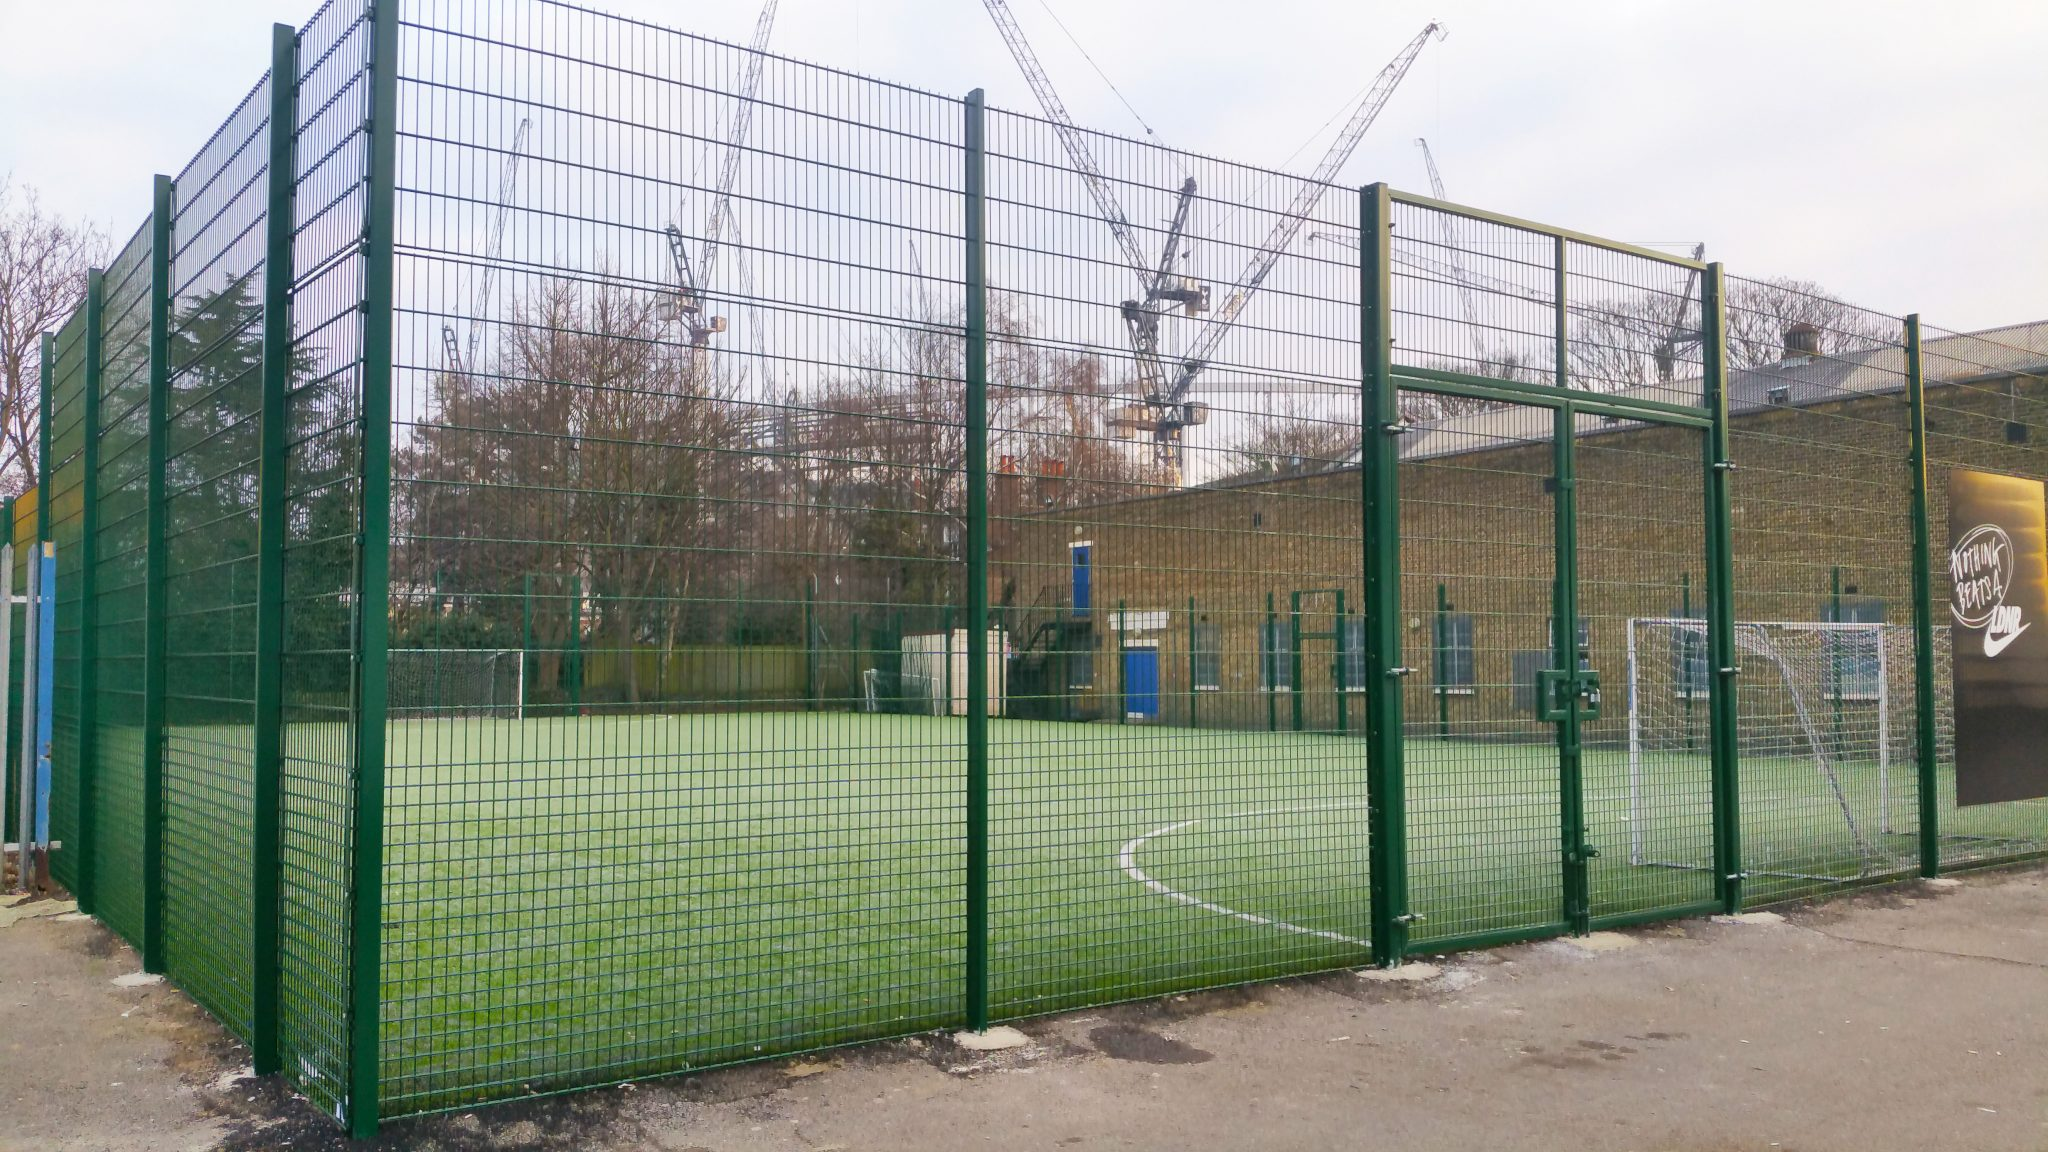 Tottenham Nike Fencing Project 2 Sports Courts Uk